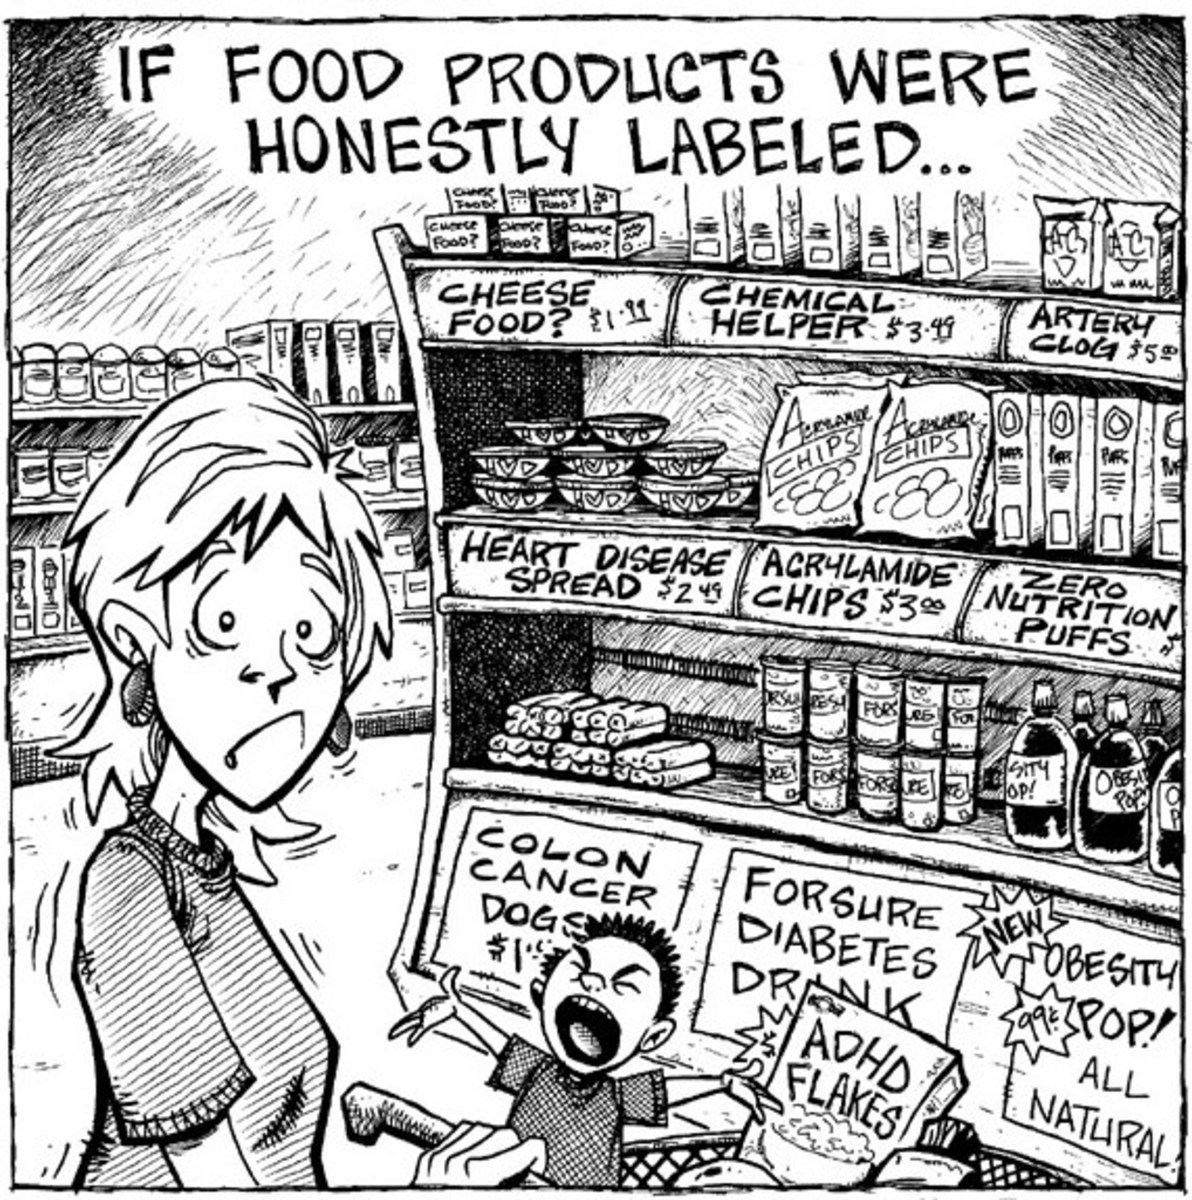 Misleading and Silly Food Labels